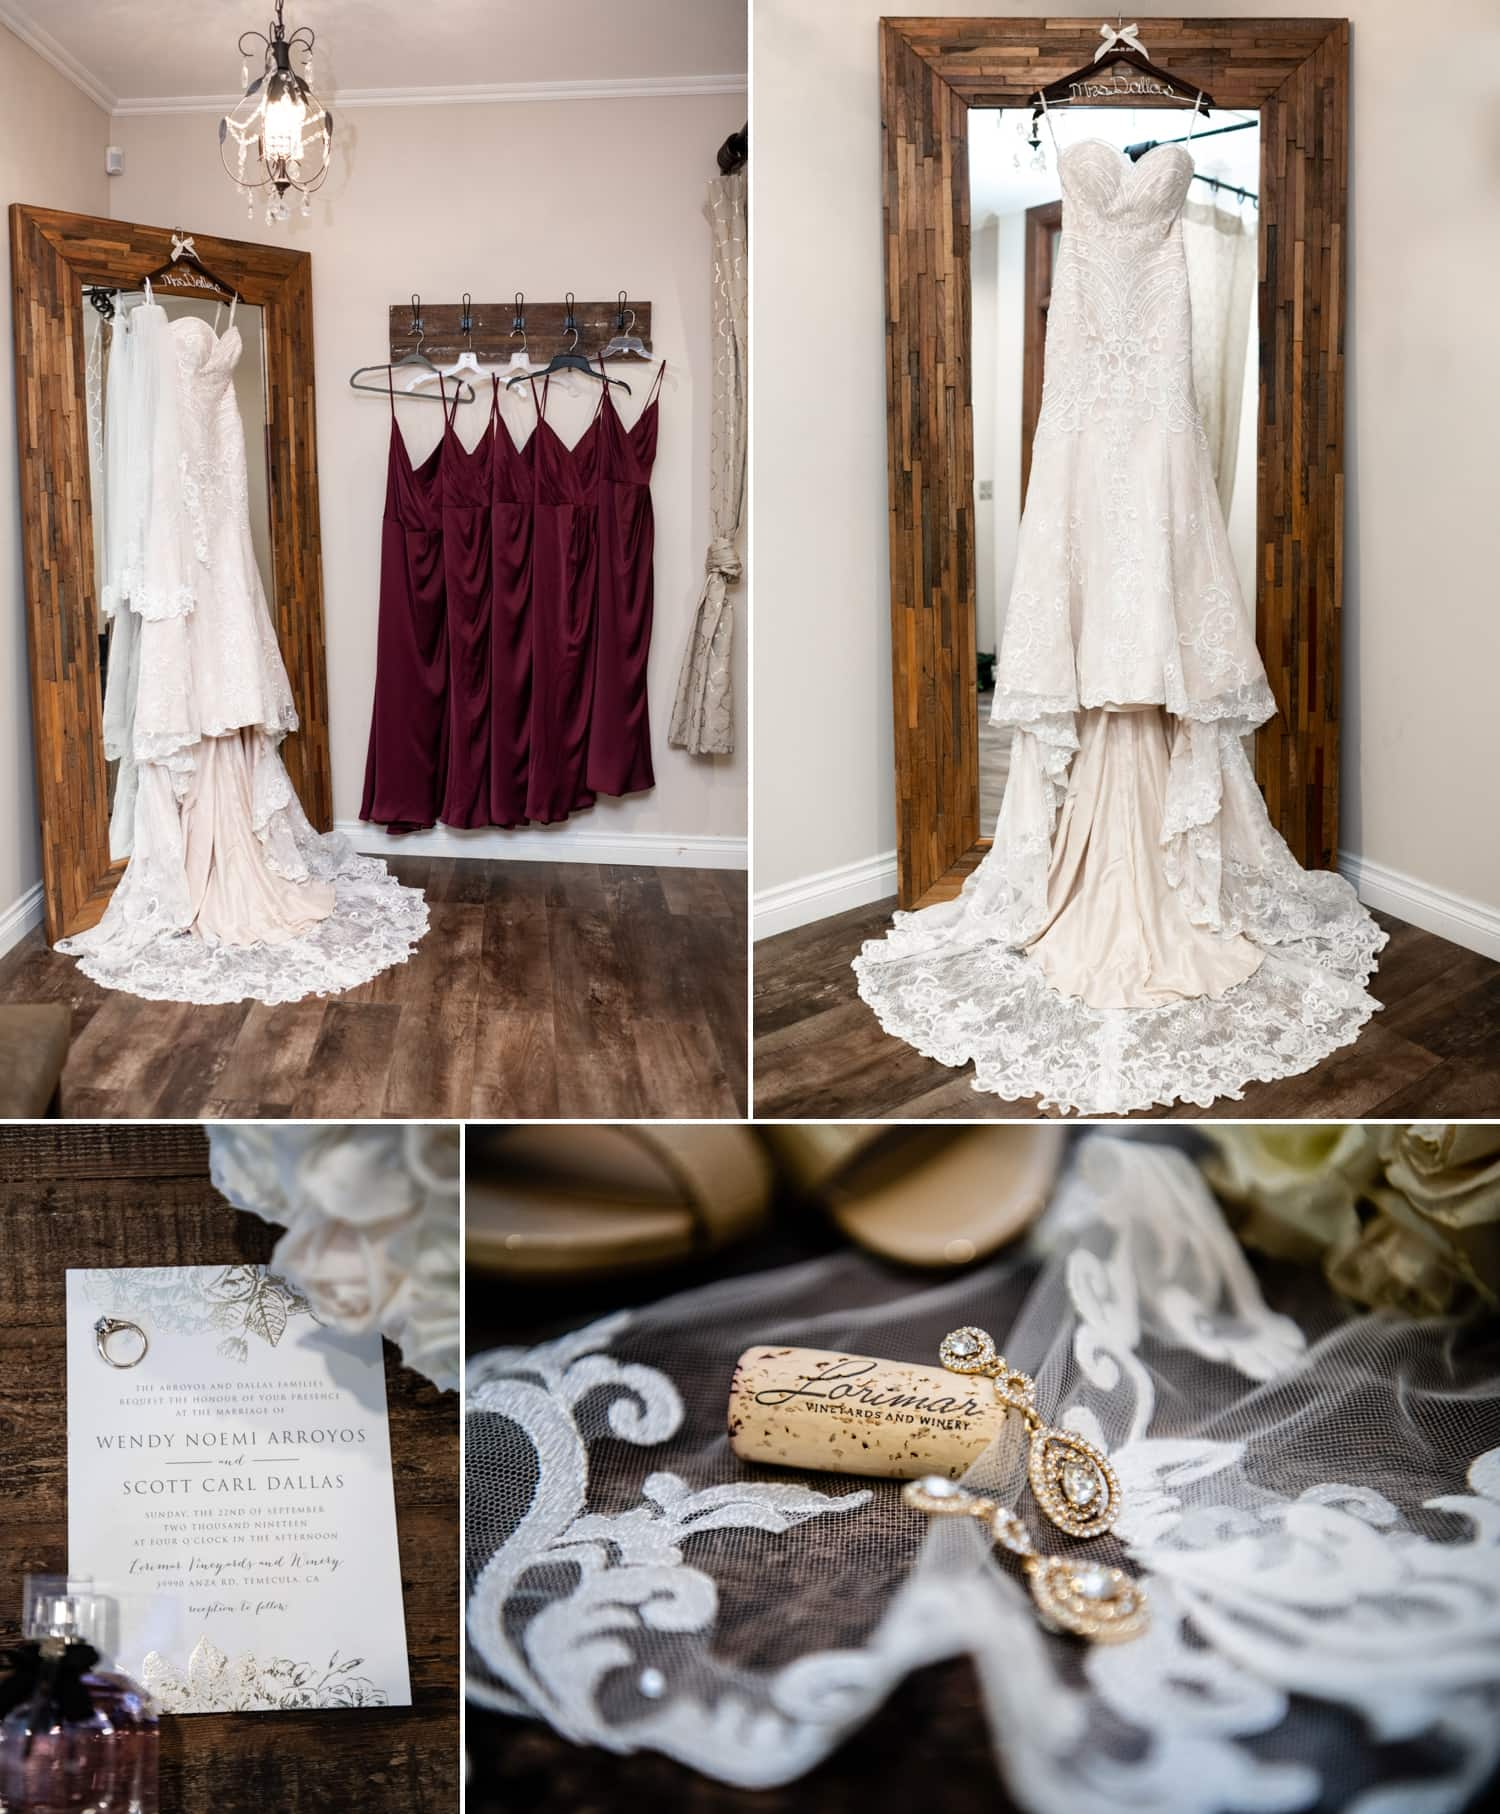 Bride's dress hanging in the bridal suite at Lorimar Winery.